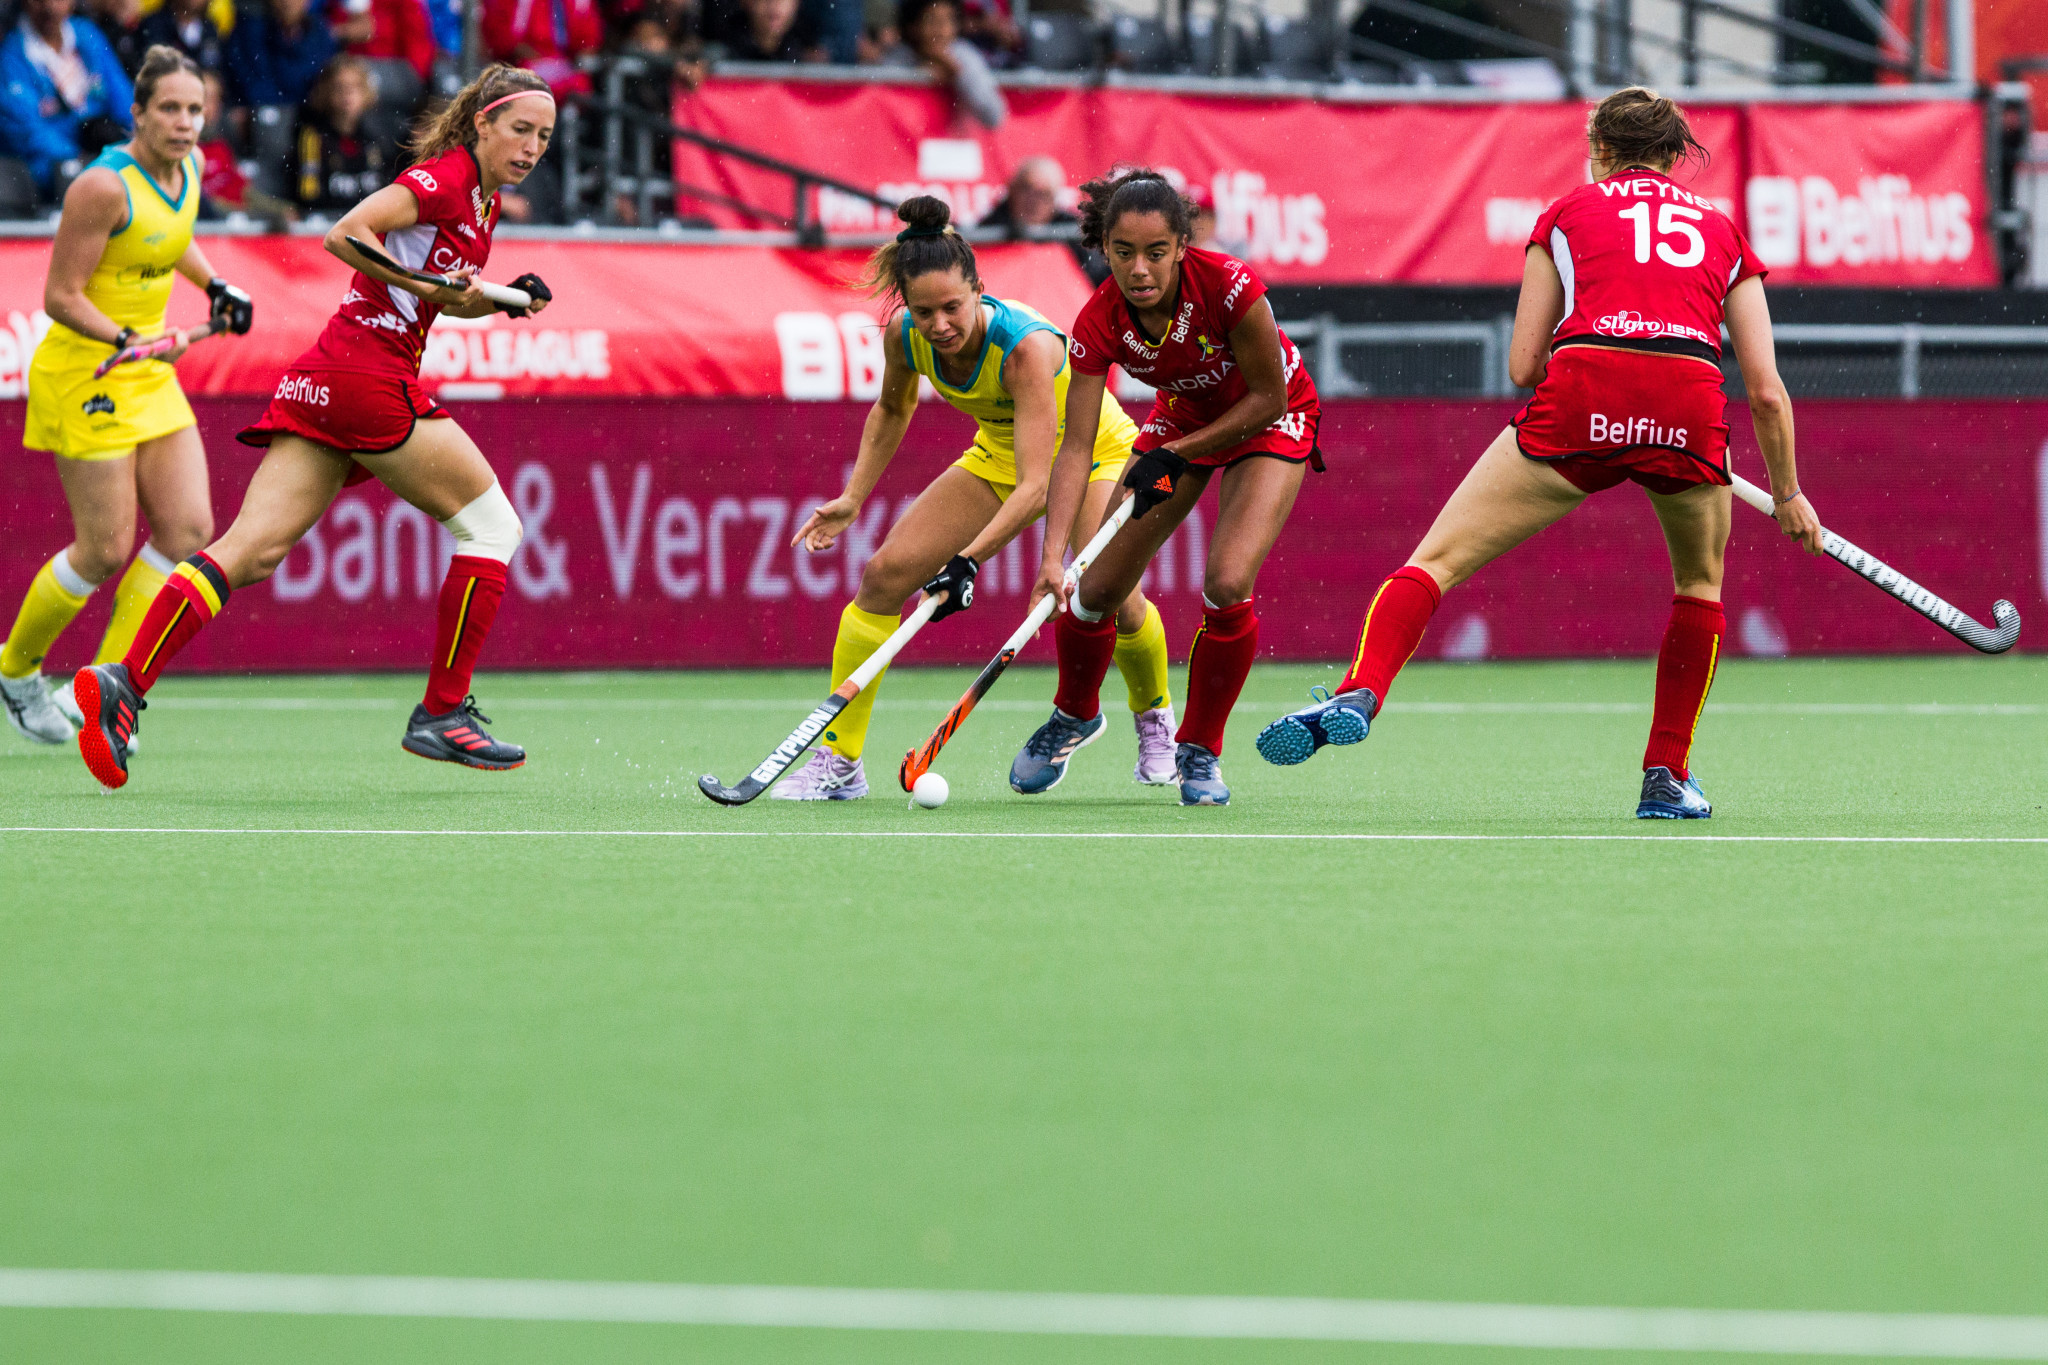 Belgium ended a five-match losing streak with victory over Australia in the women's competition ©Getty Images